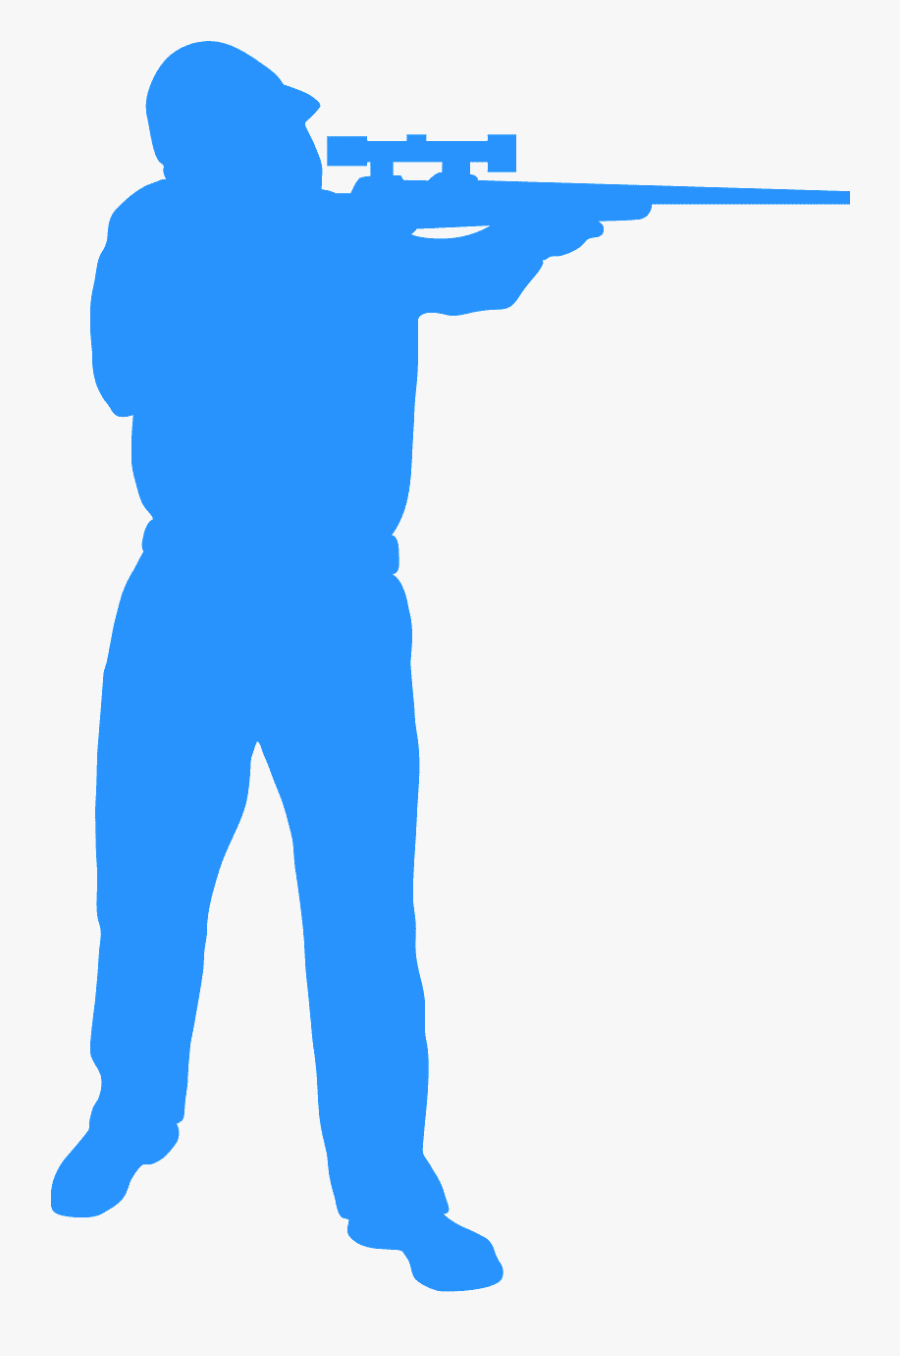 Silhouette Of Hunter Standing Up, Transparent Clipart